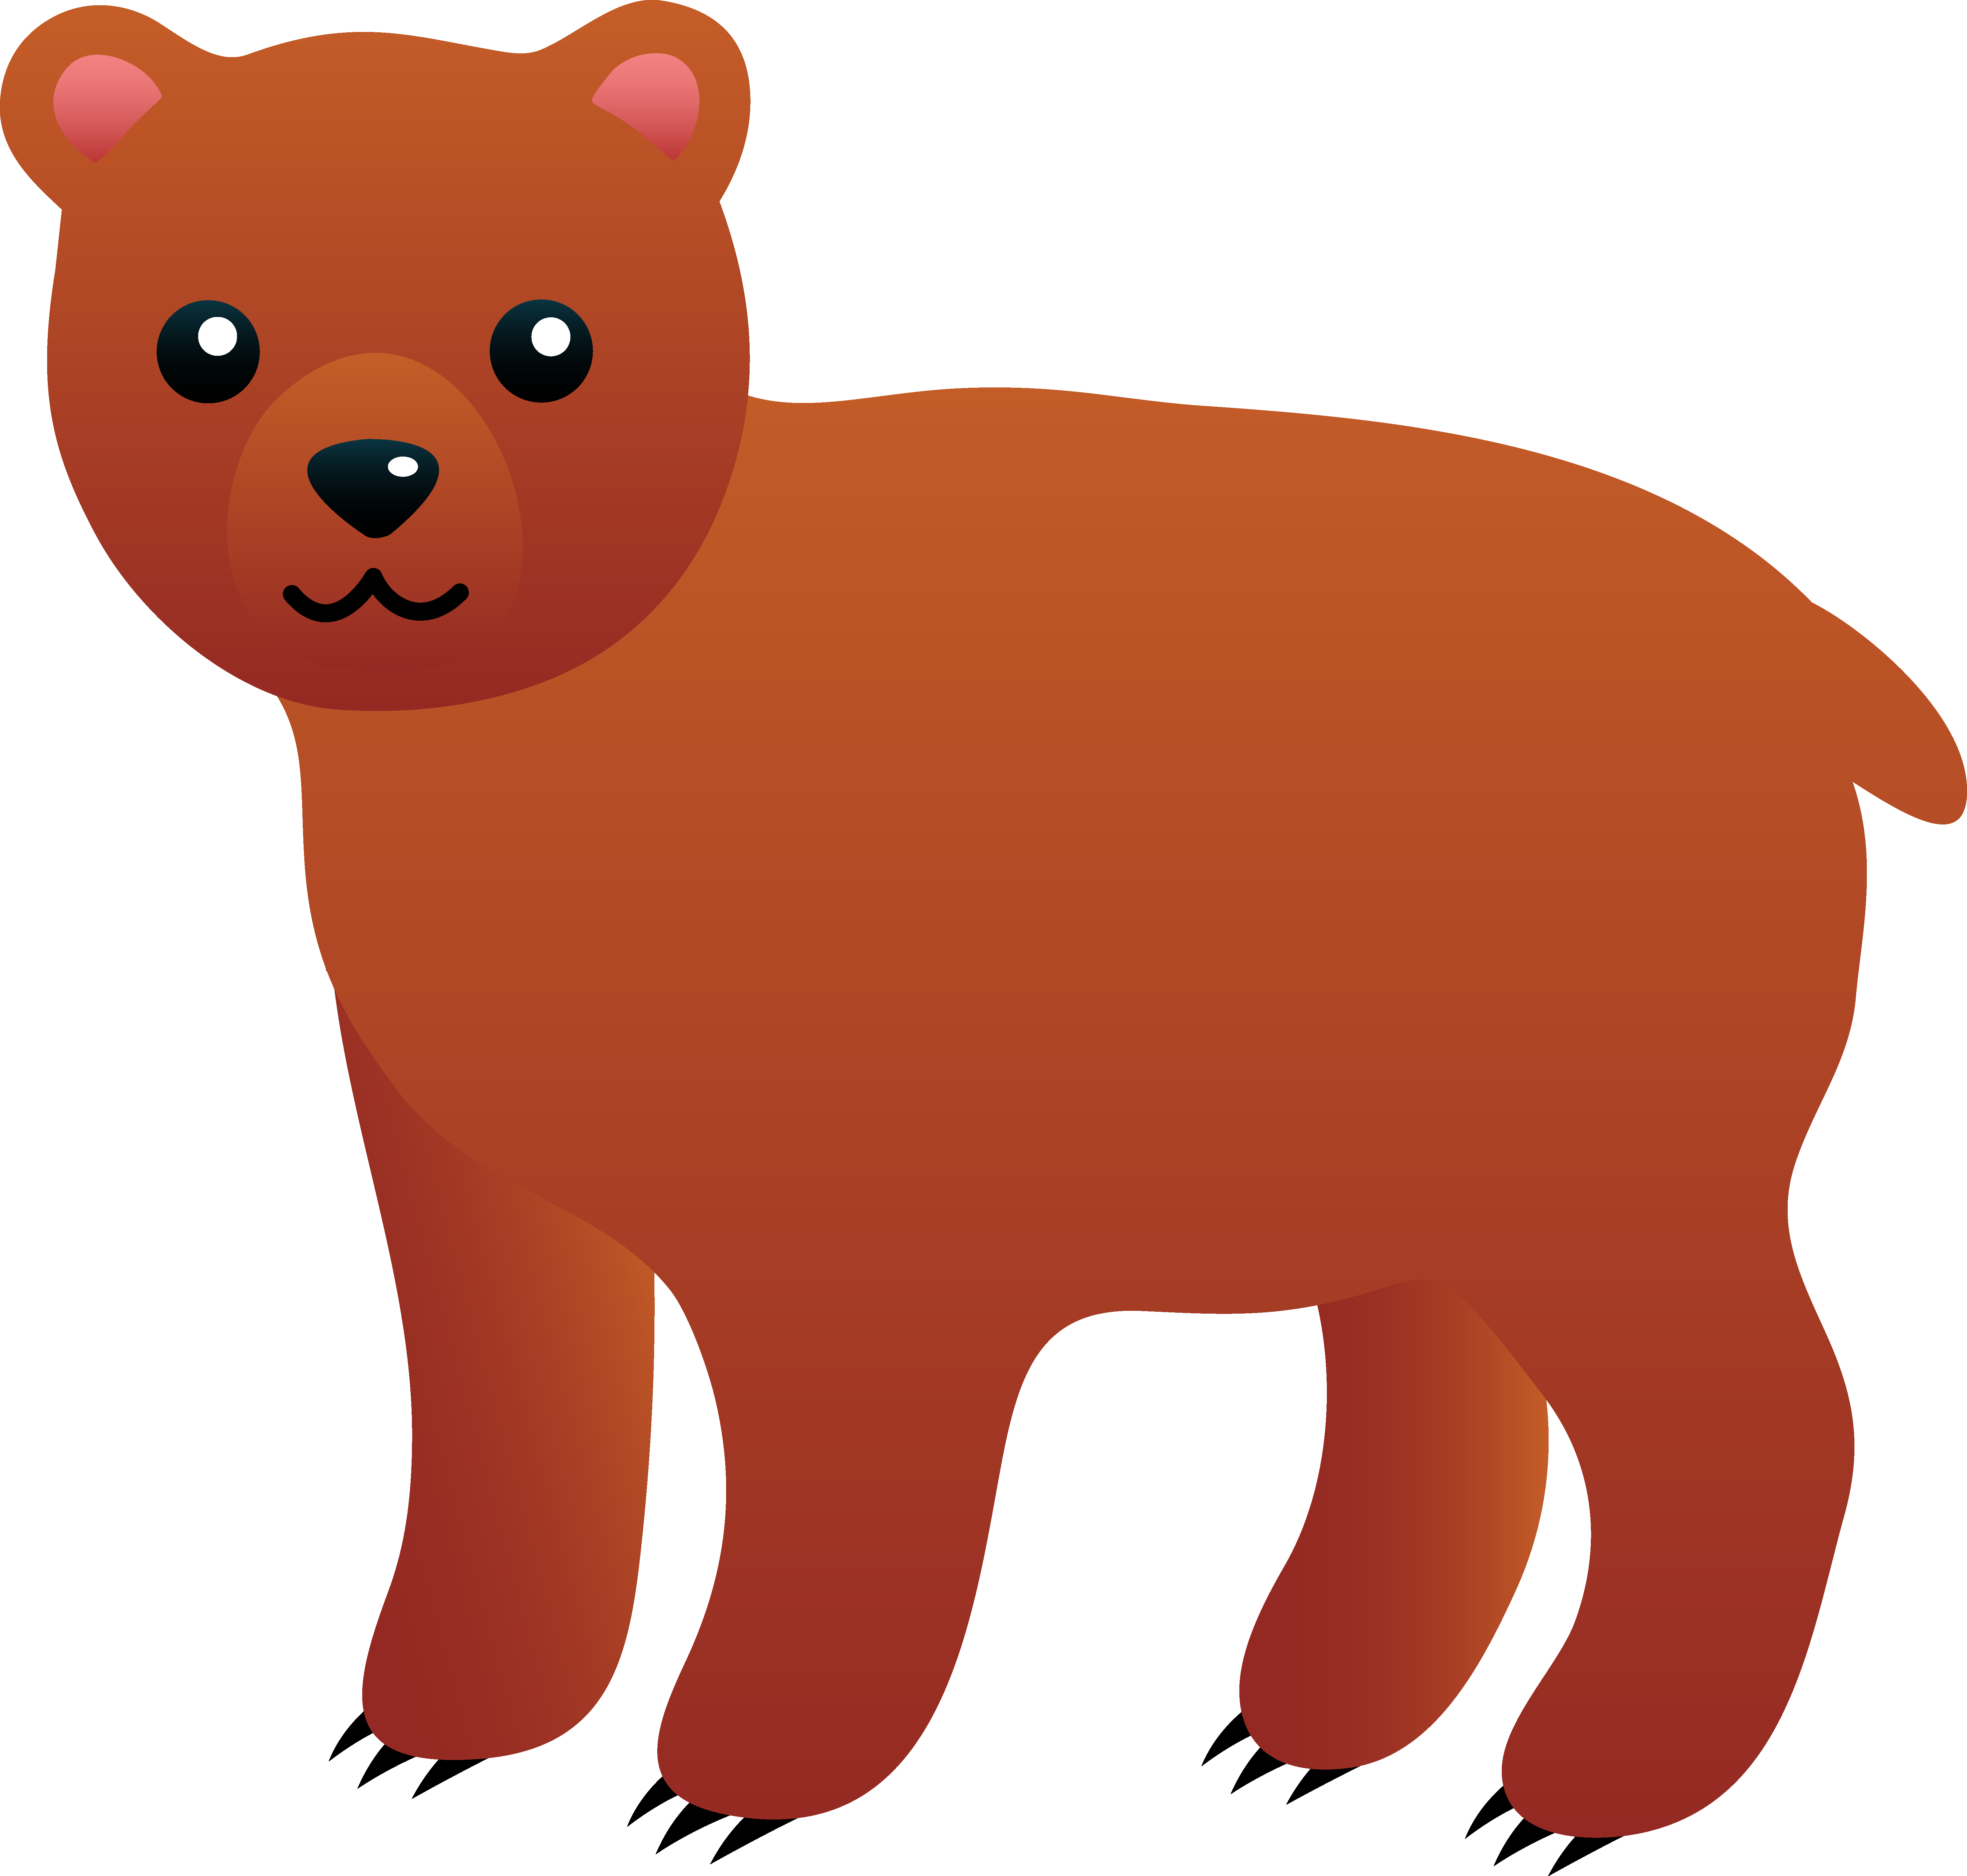 Bear Cub clipart #2, Download drawings